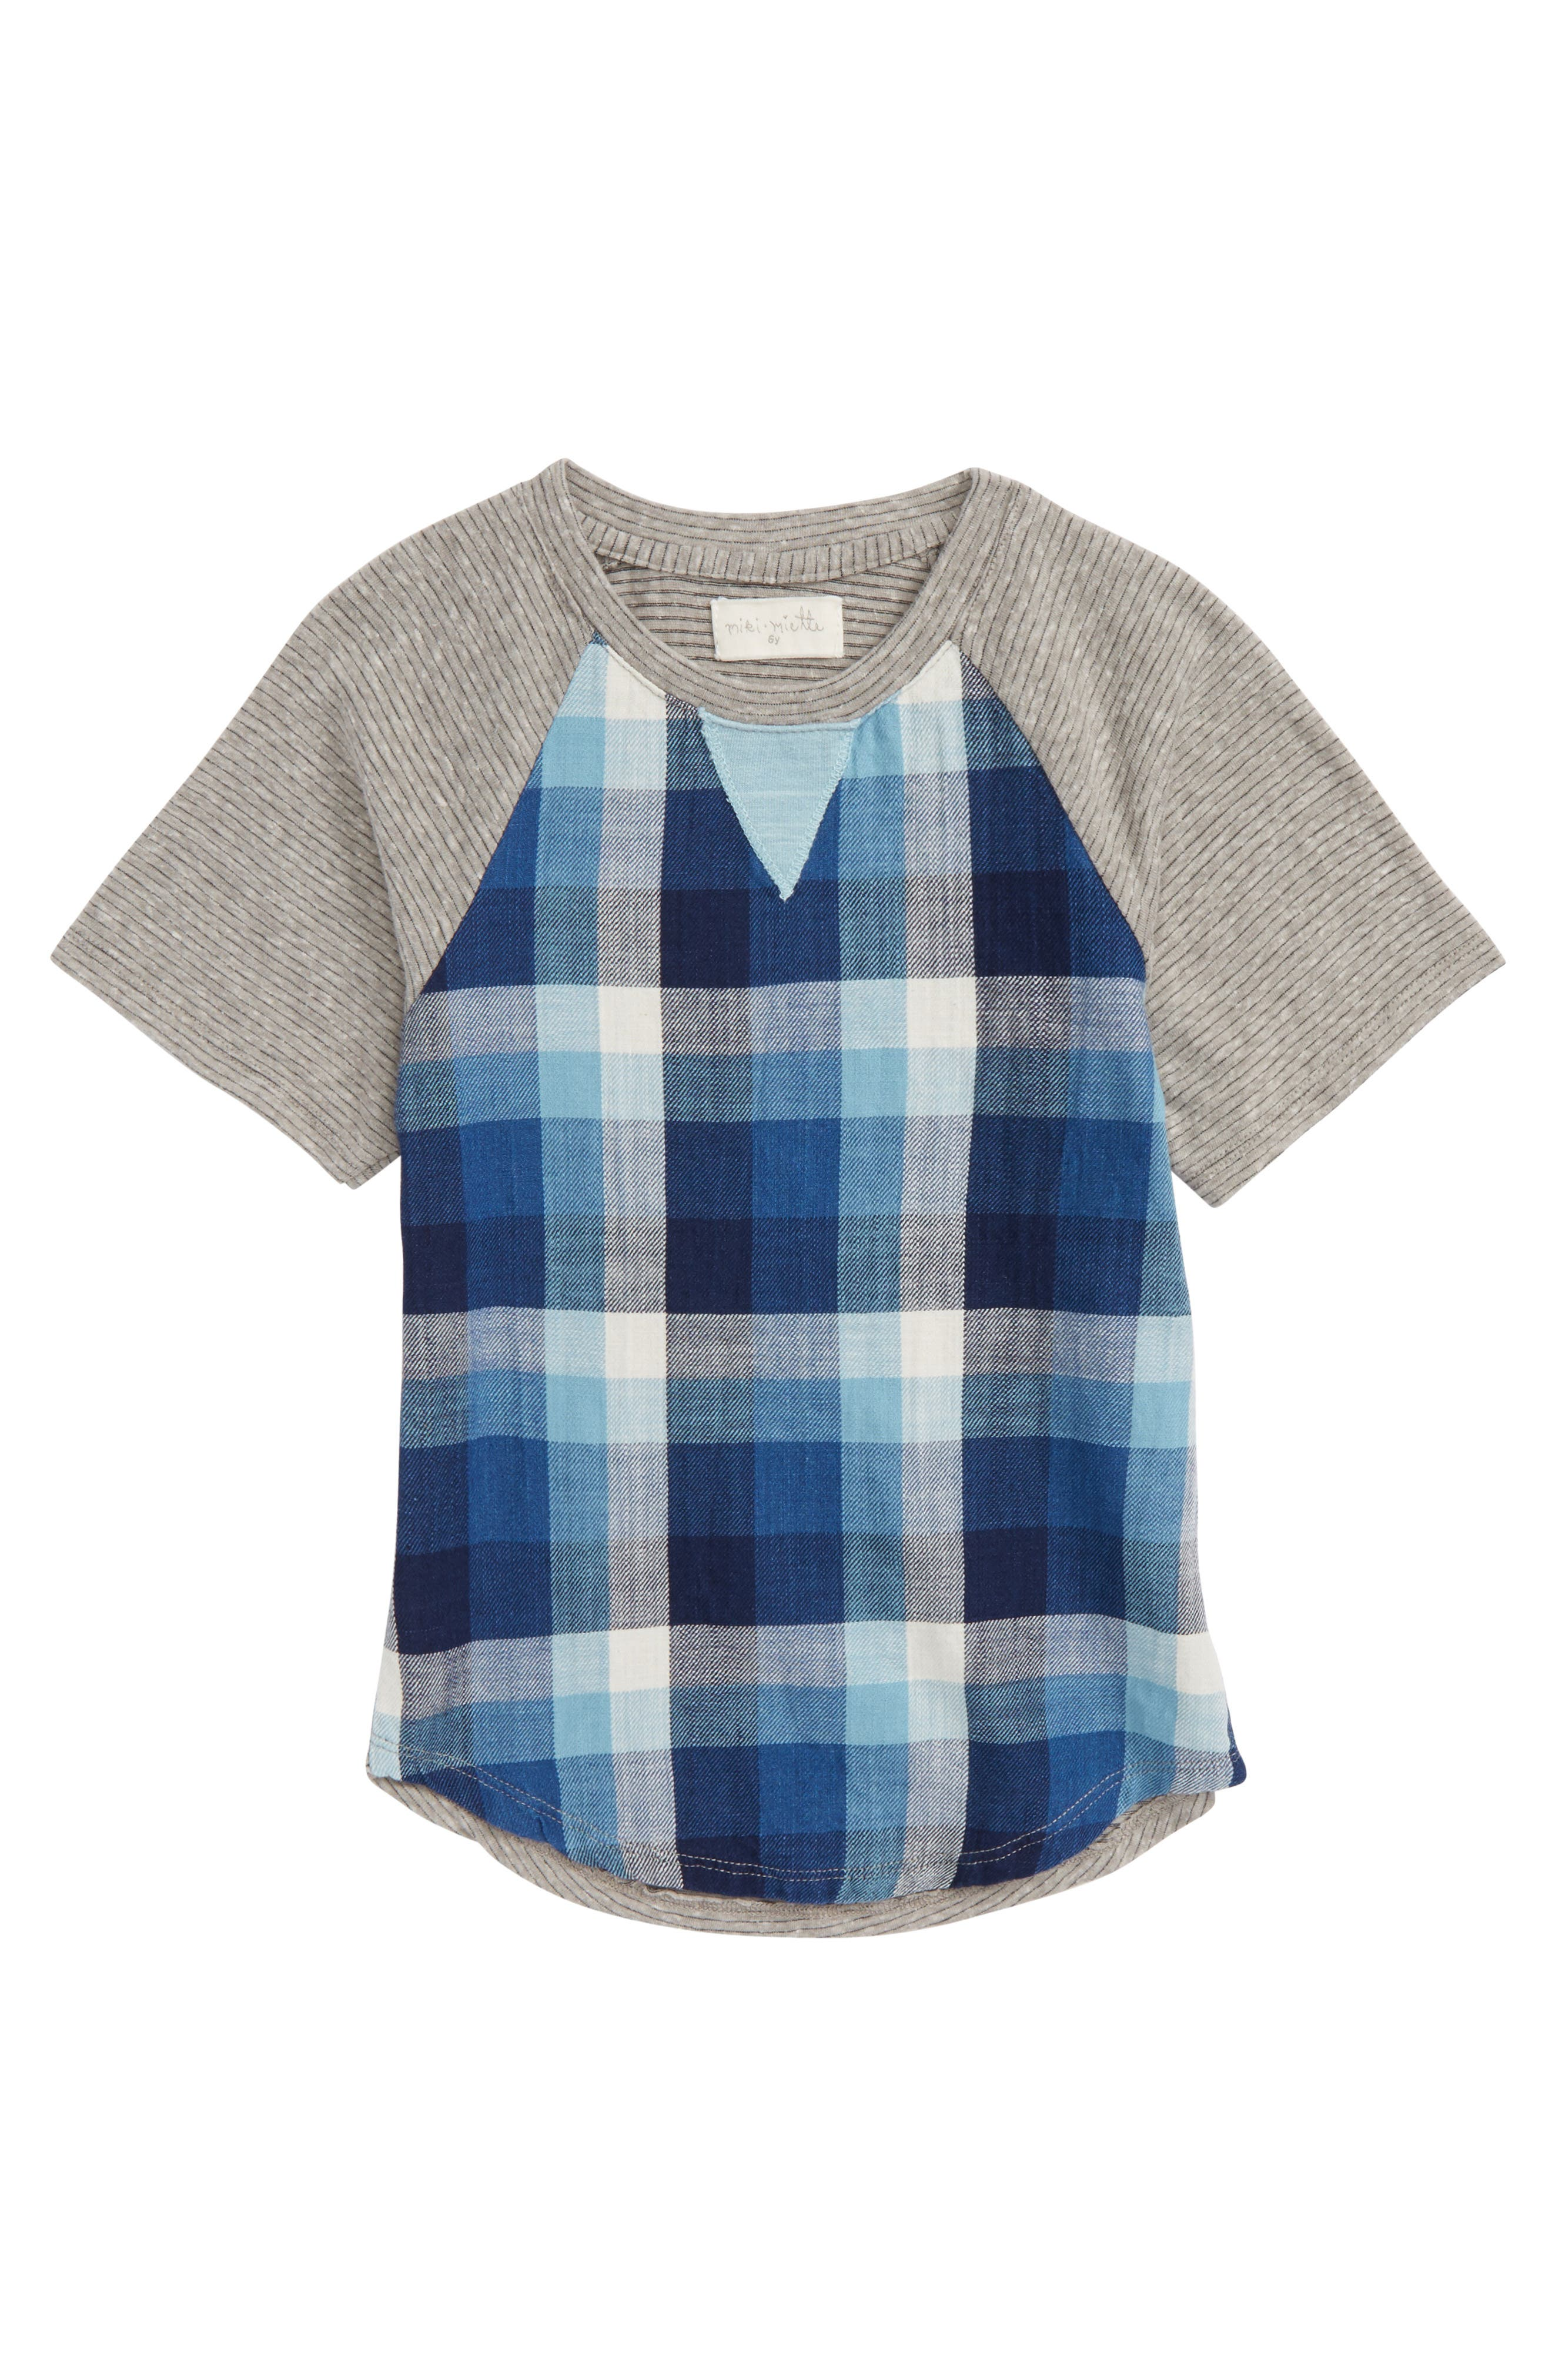 Caz Plaid T-Shirt,                             Main thumbnail 1, color,                             400